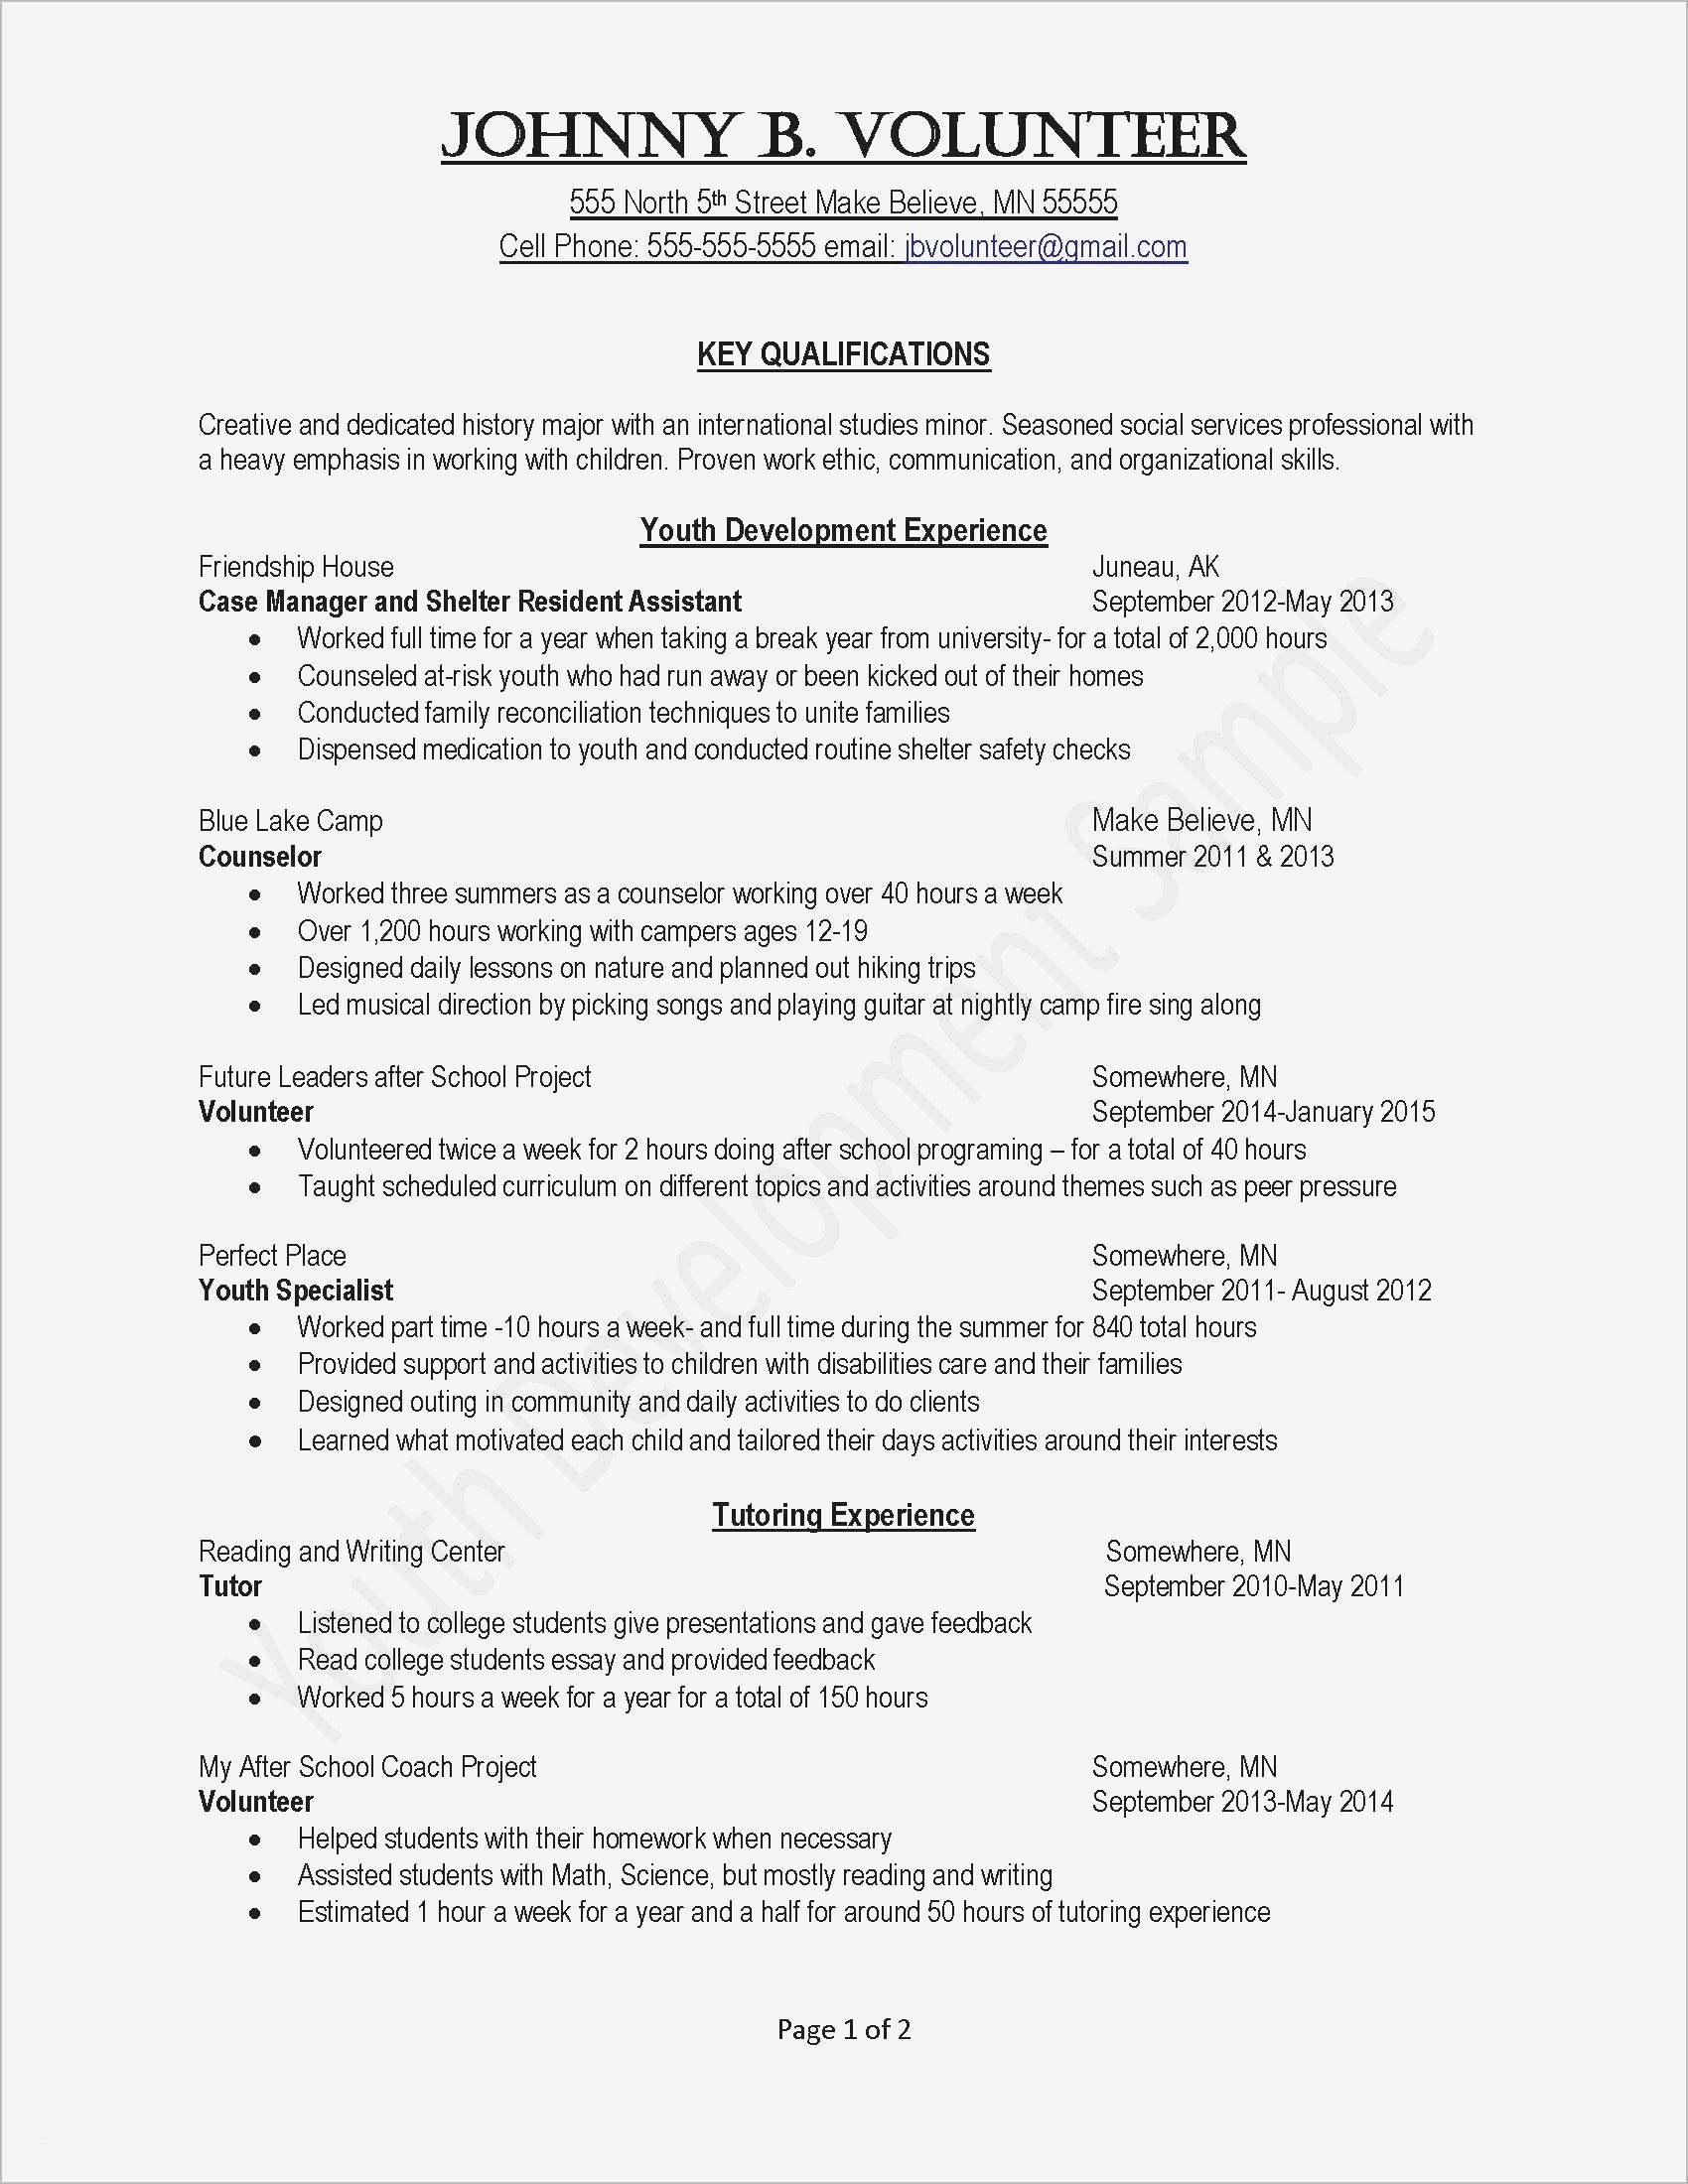 Cover Letter Template for Job Application - Copy A Cover Letter for A Job Application Beautiful Elegant Job